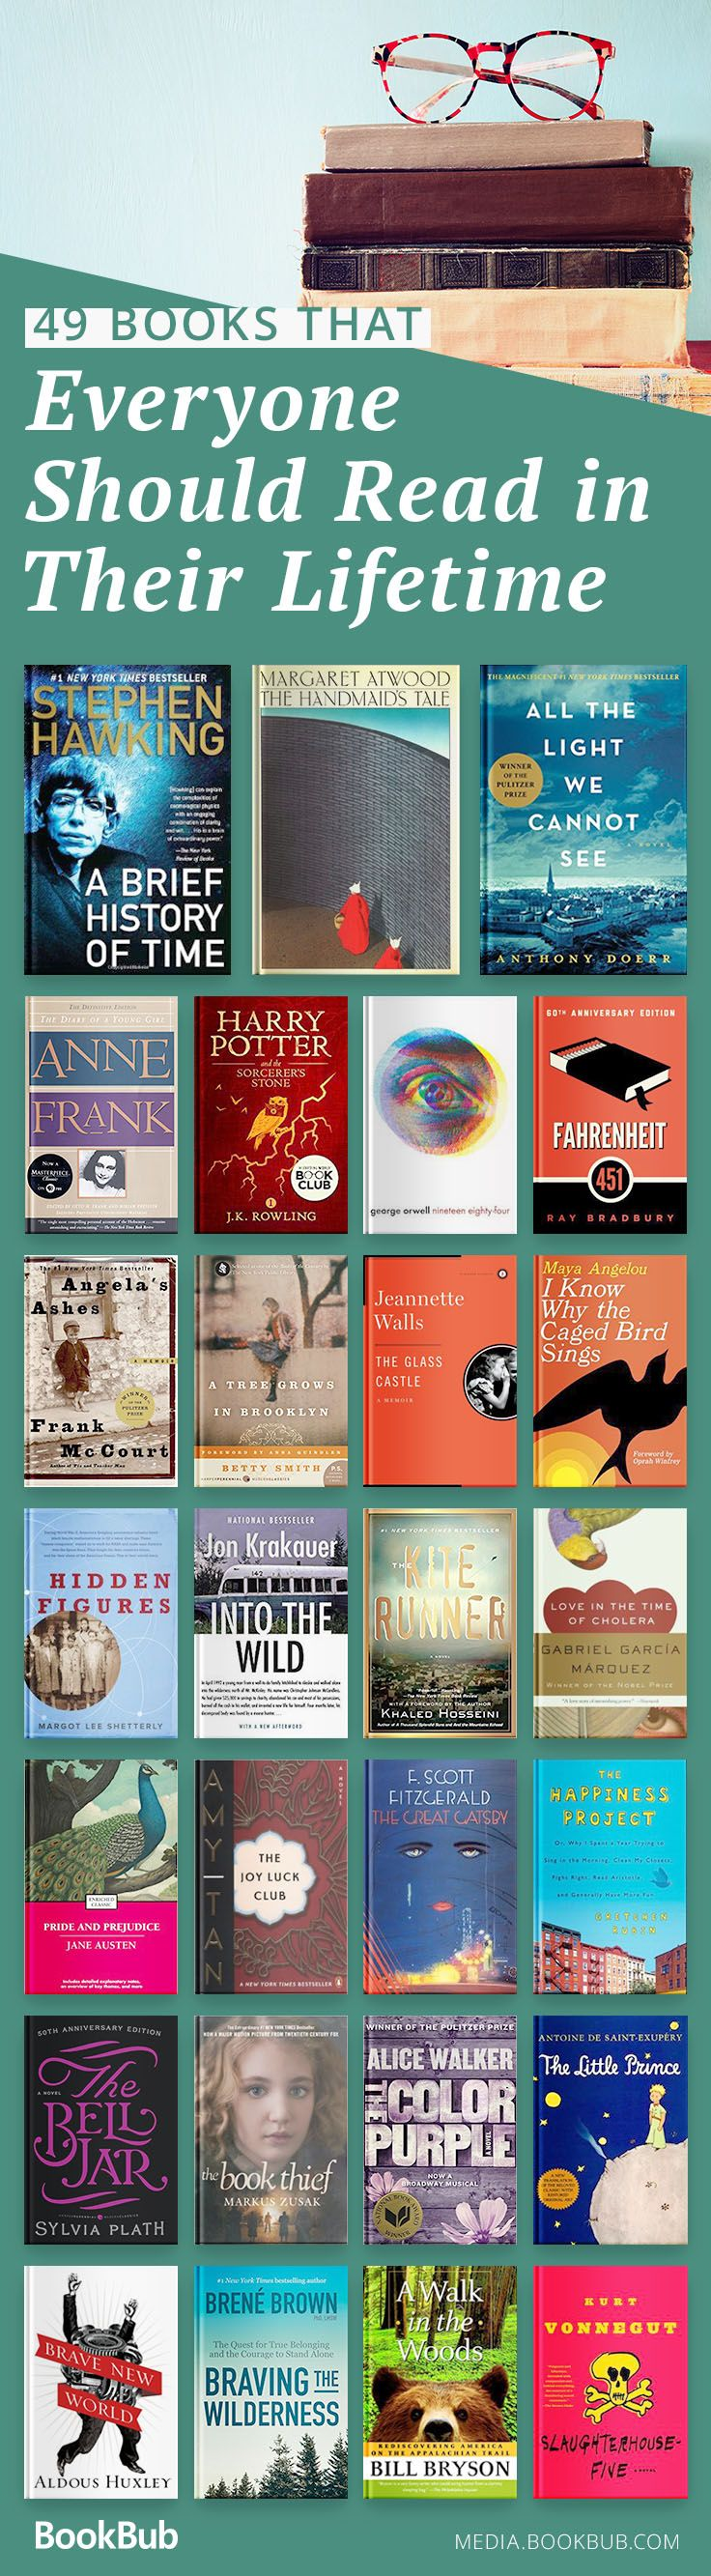 Reading list of books everyone should read in their lifetime, including some of the bestselling fiction as well as inspiring nonfiction.